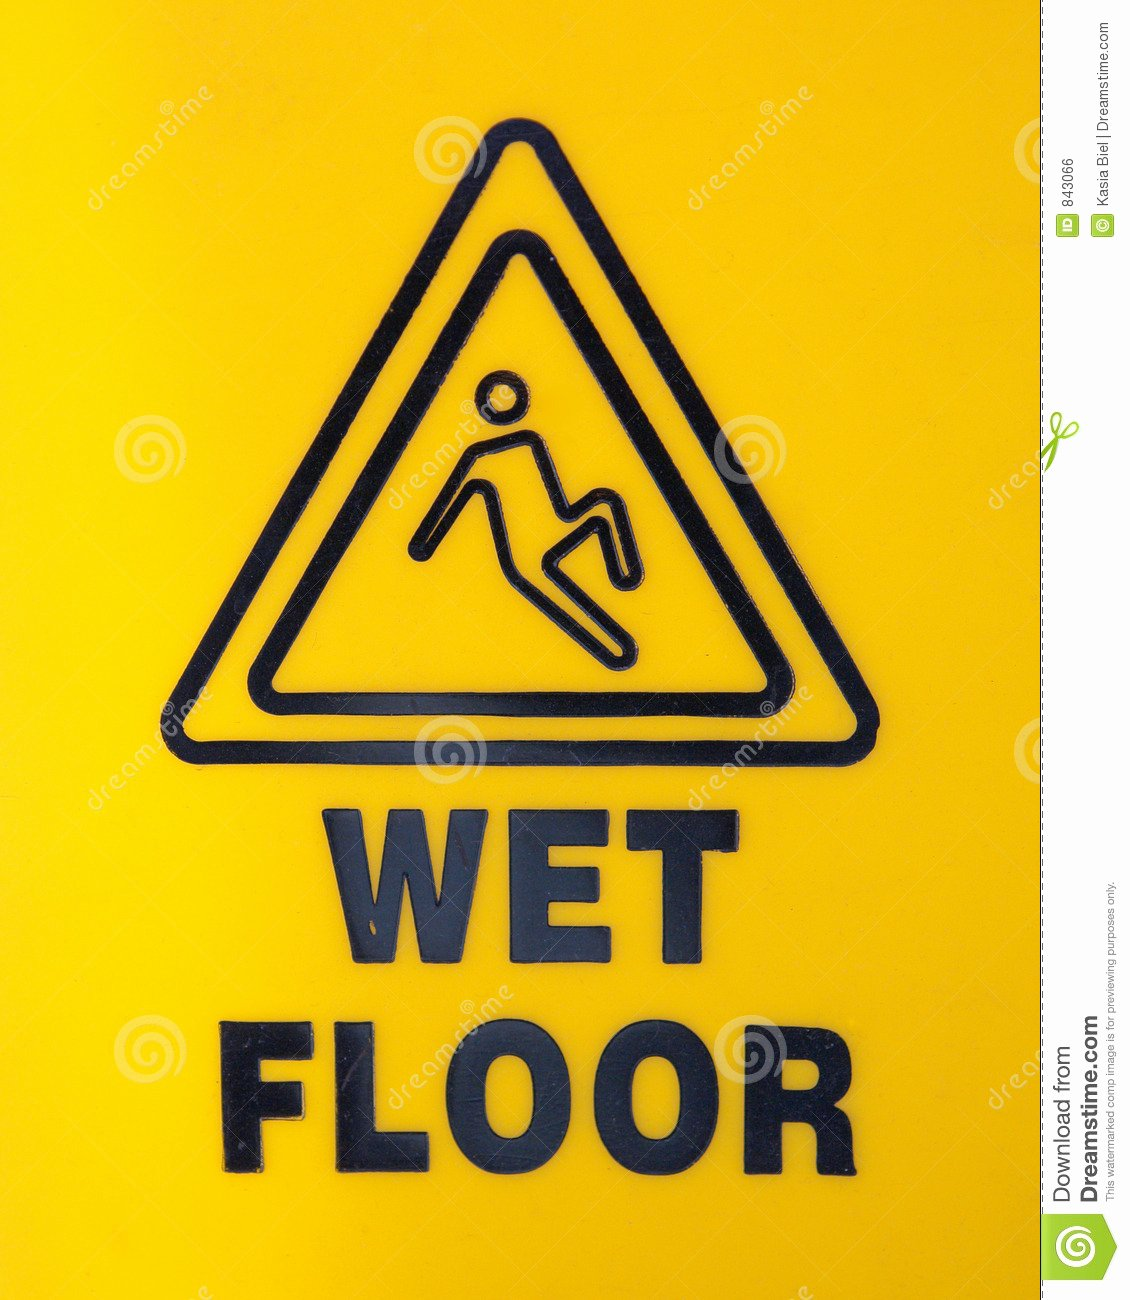 Wet Floor Signs Printable Beautiful Wet Floor Sign Royalty Free Stock Image Image